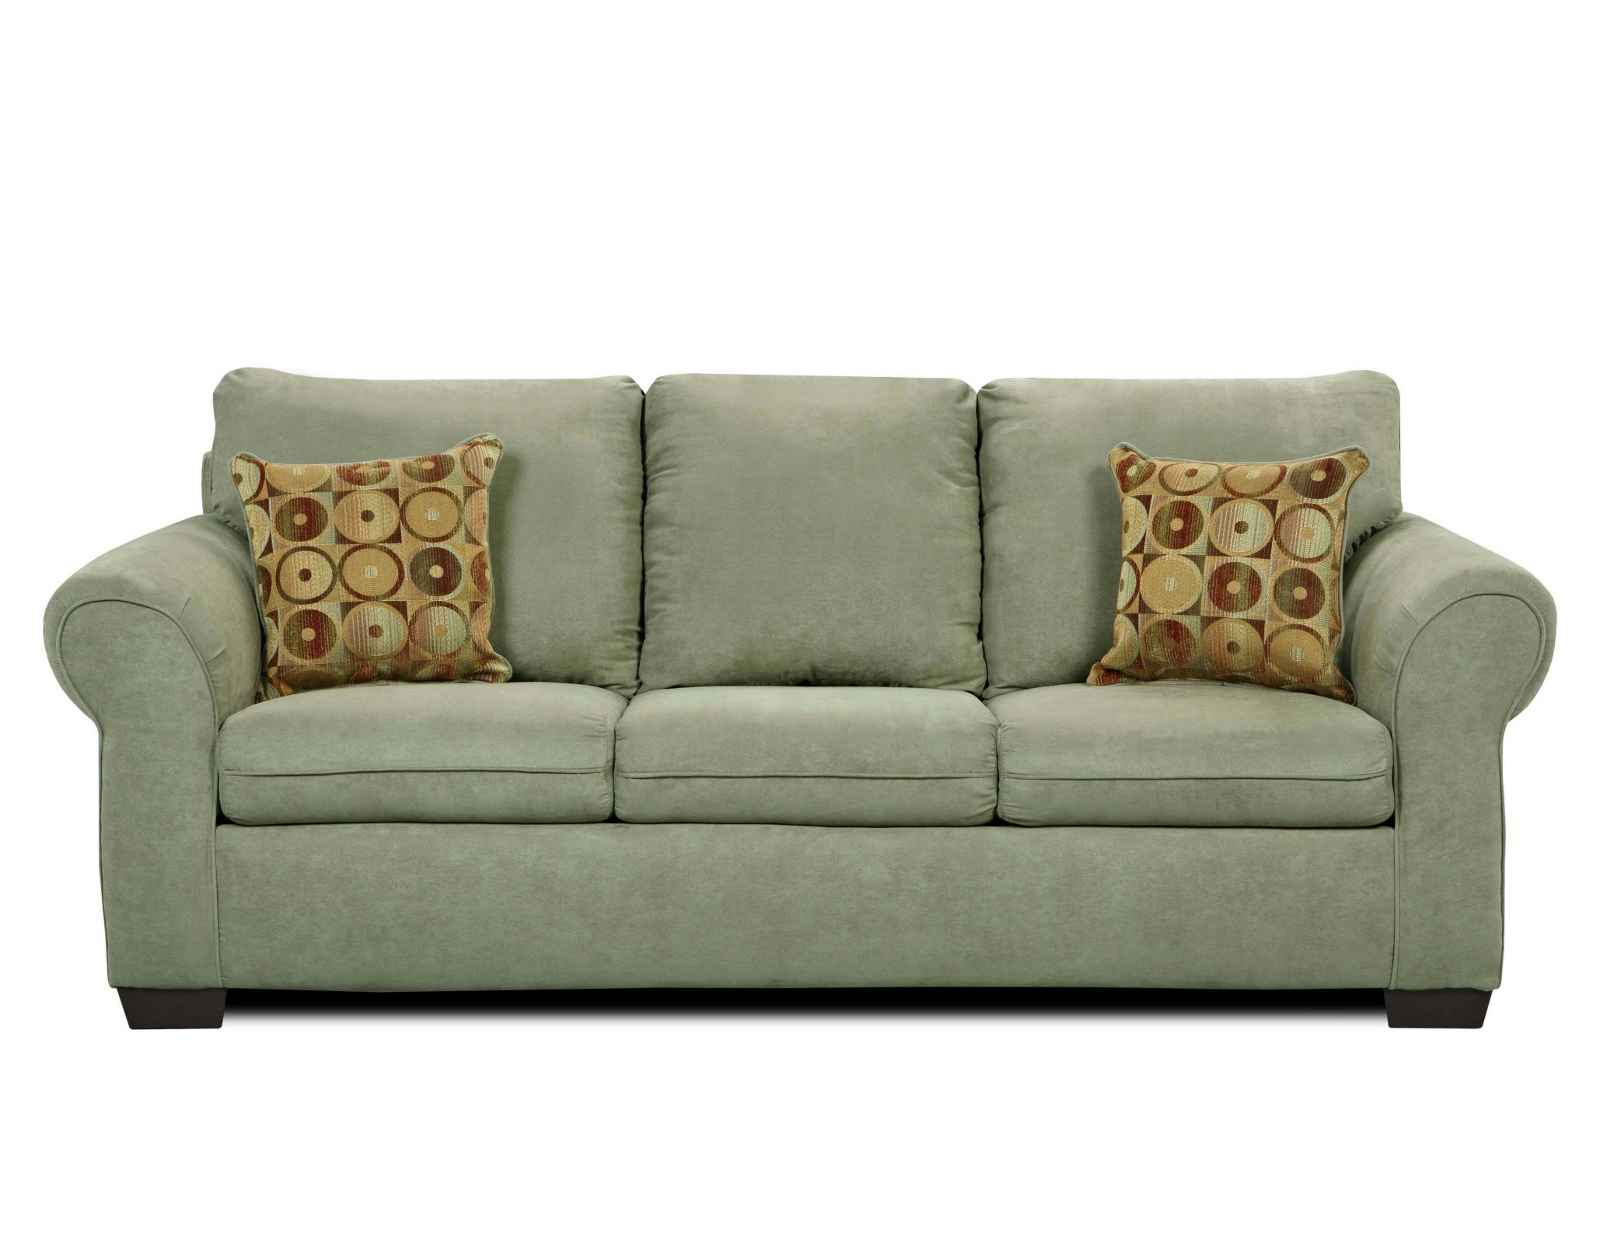 Cheap sofa and loveseat sets feel the home Sofa loveseat